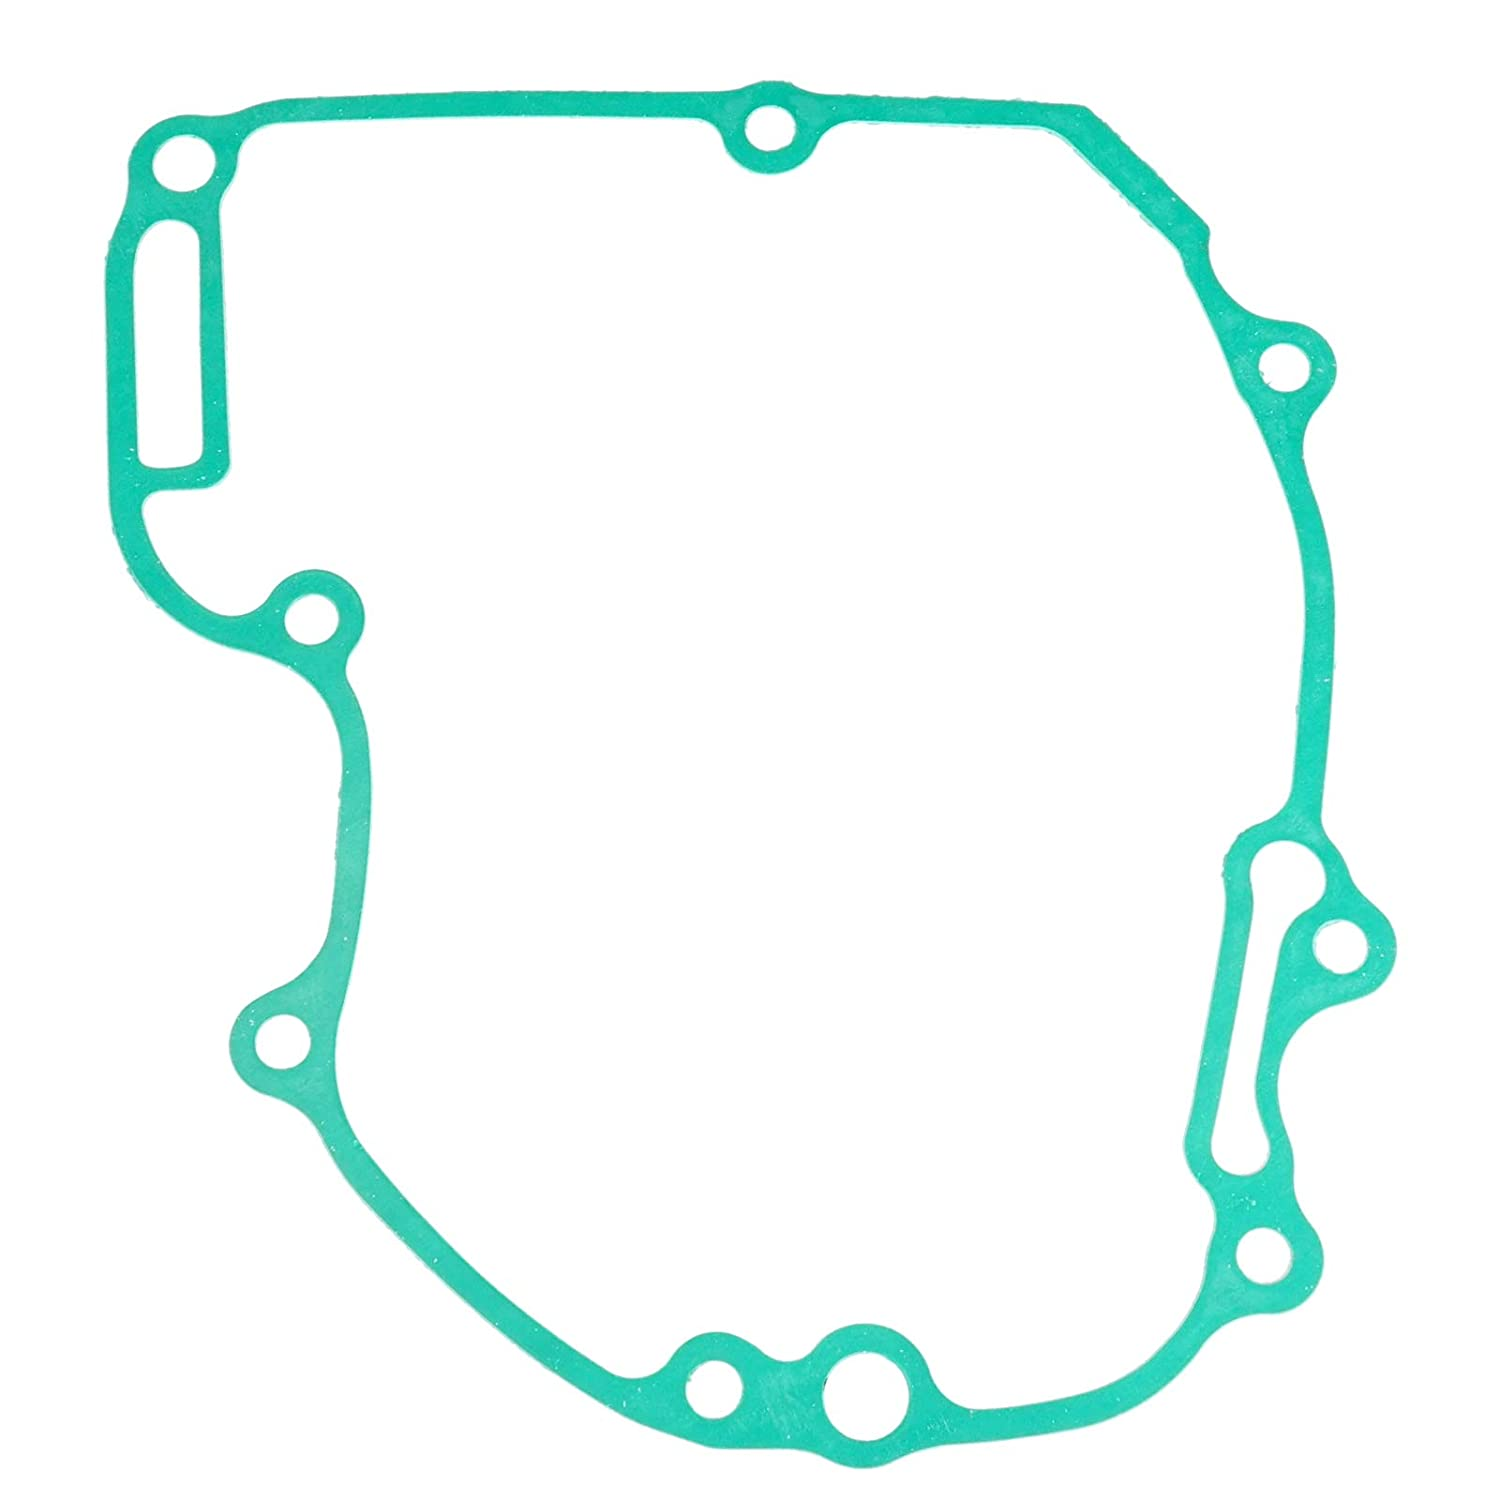 CALTRIC STATOR COVER GASKET FITS Honda CRF250X CRF250 X 2004 2005 2006 2007 2008-2017